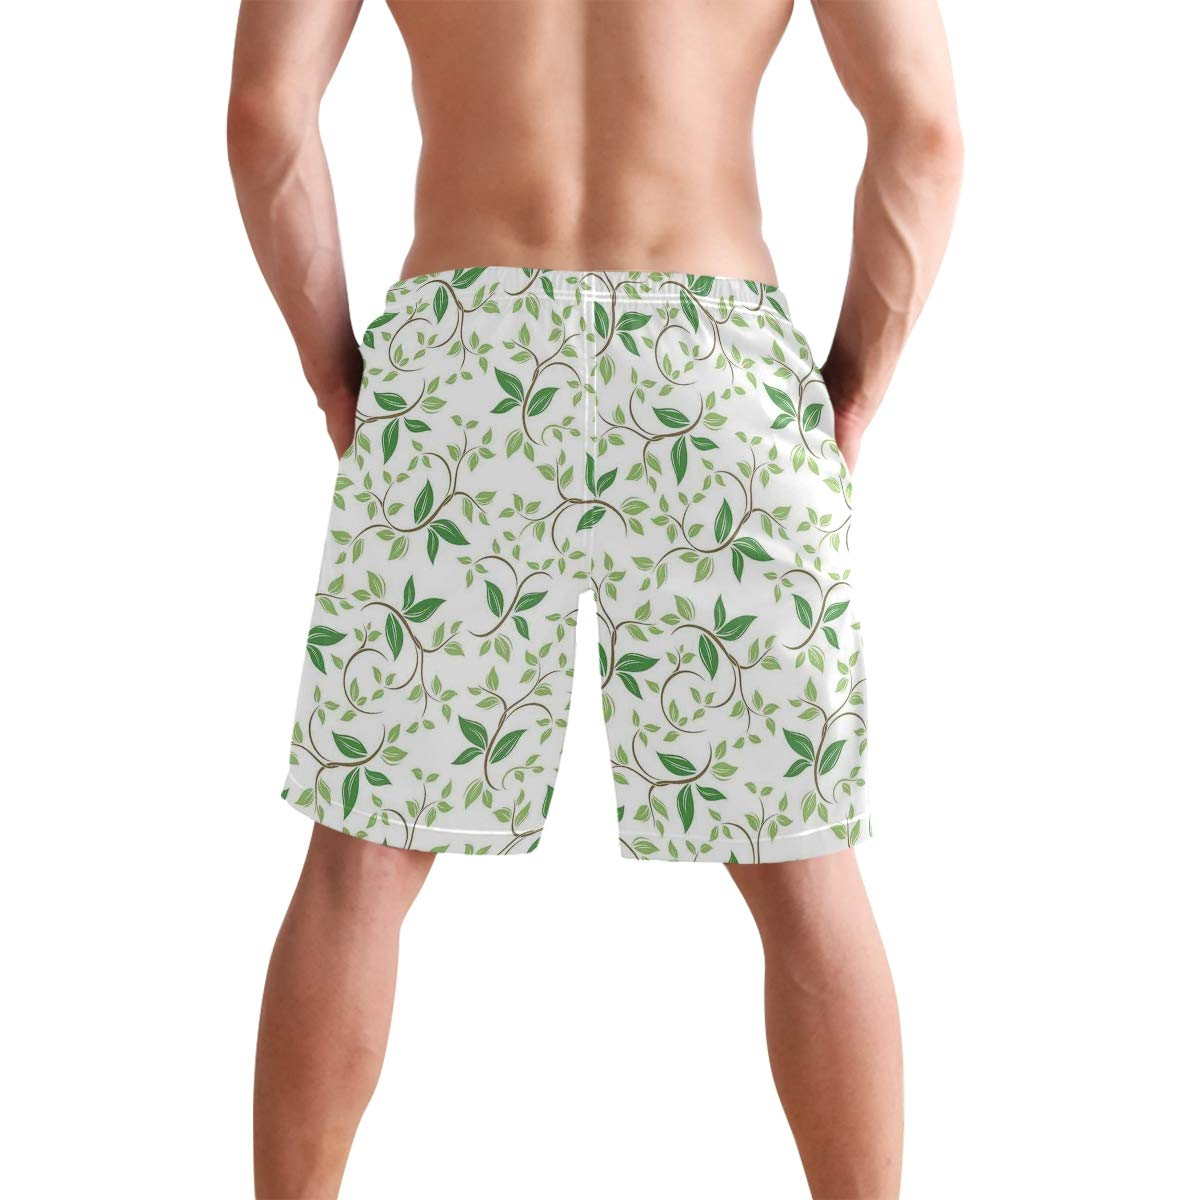 COVASA Mens Summer ShortsIvy Patterns with Tiny Fancy Green Leaves Branches Cr